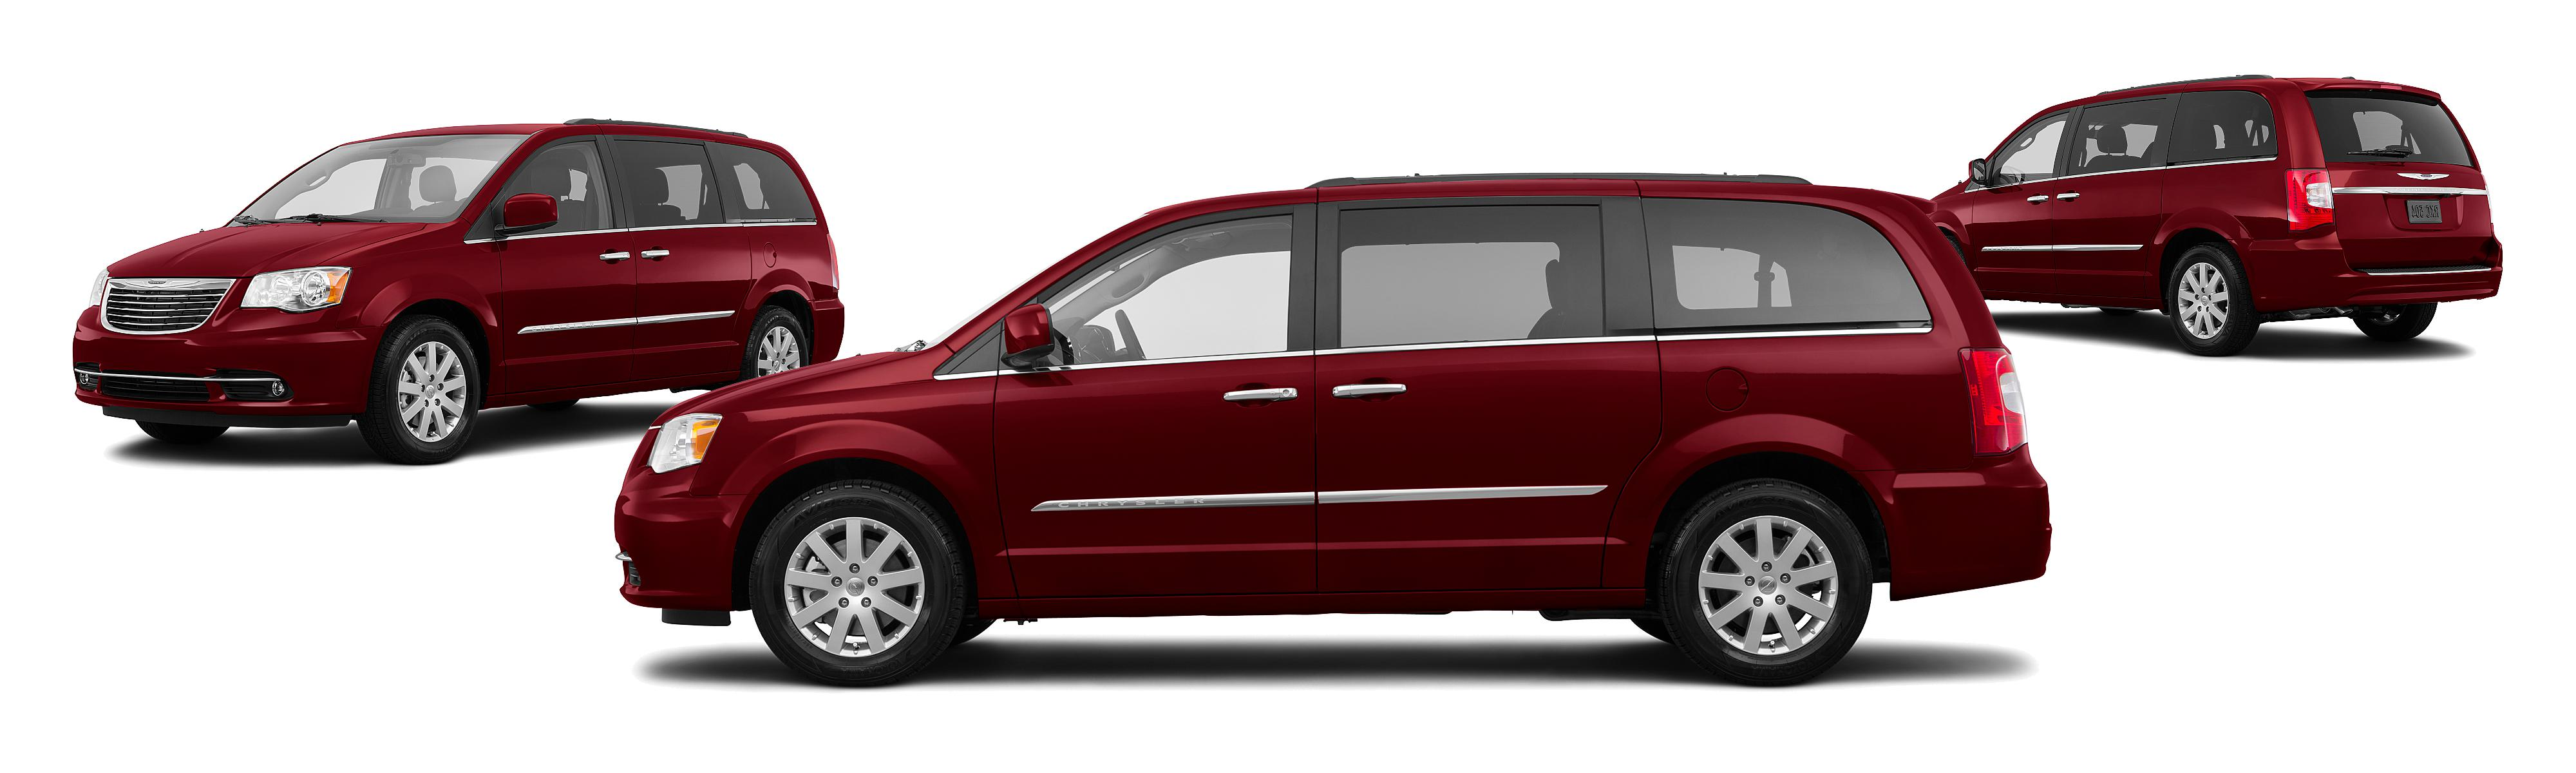 2015 Chrysler Town And Country S 4dr Mini Van Research Groovecar